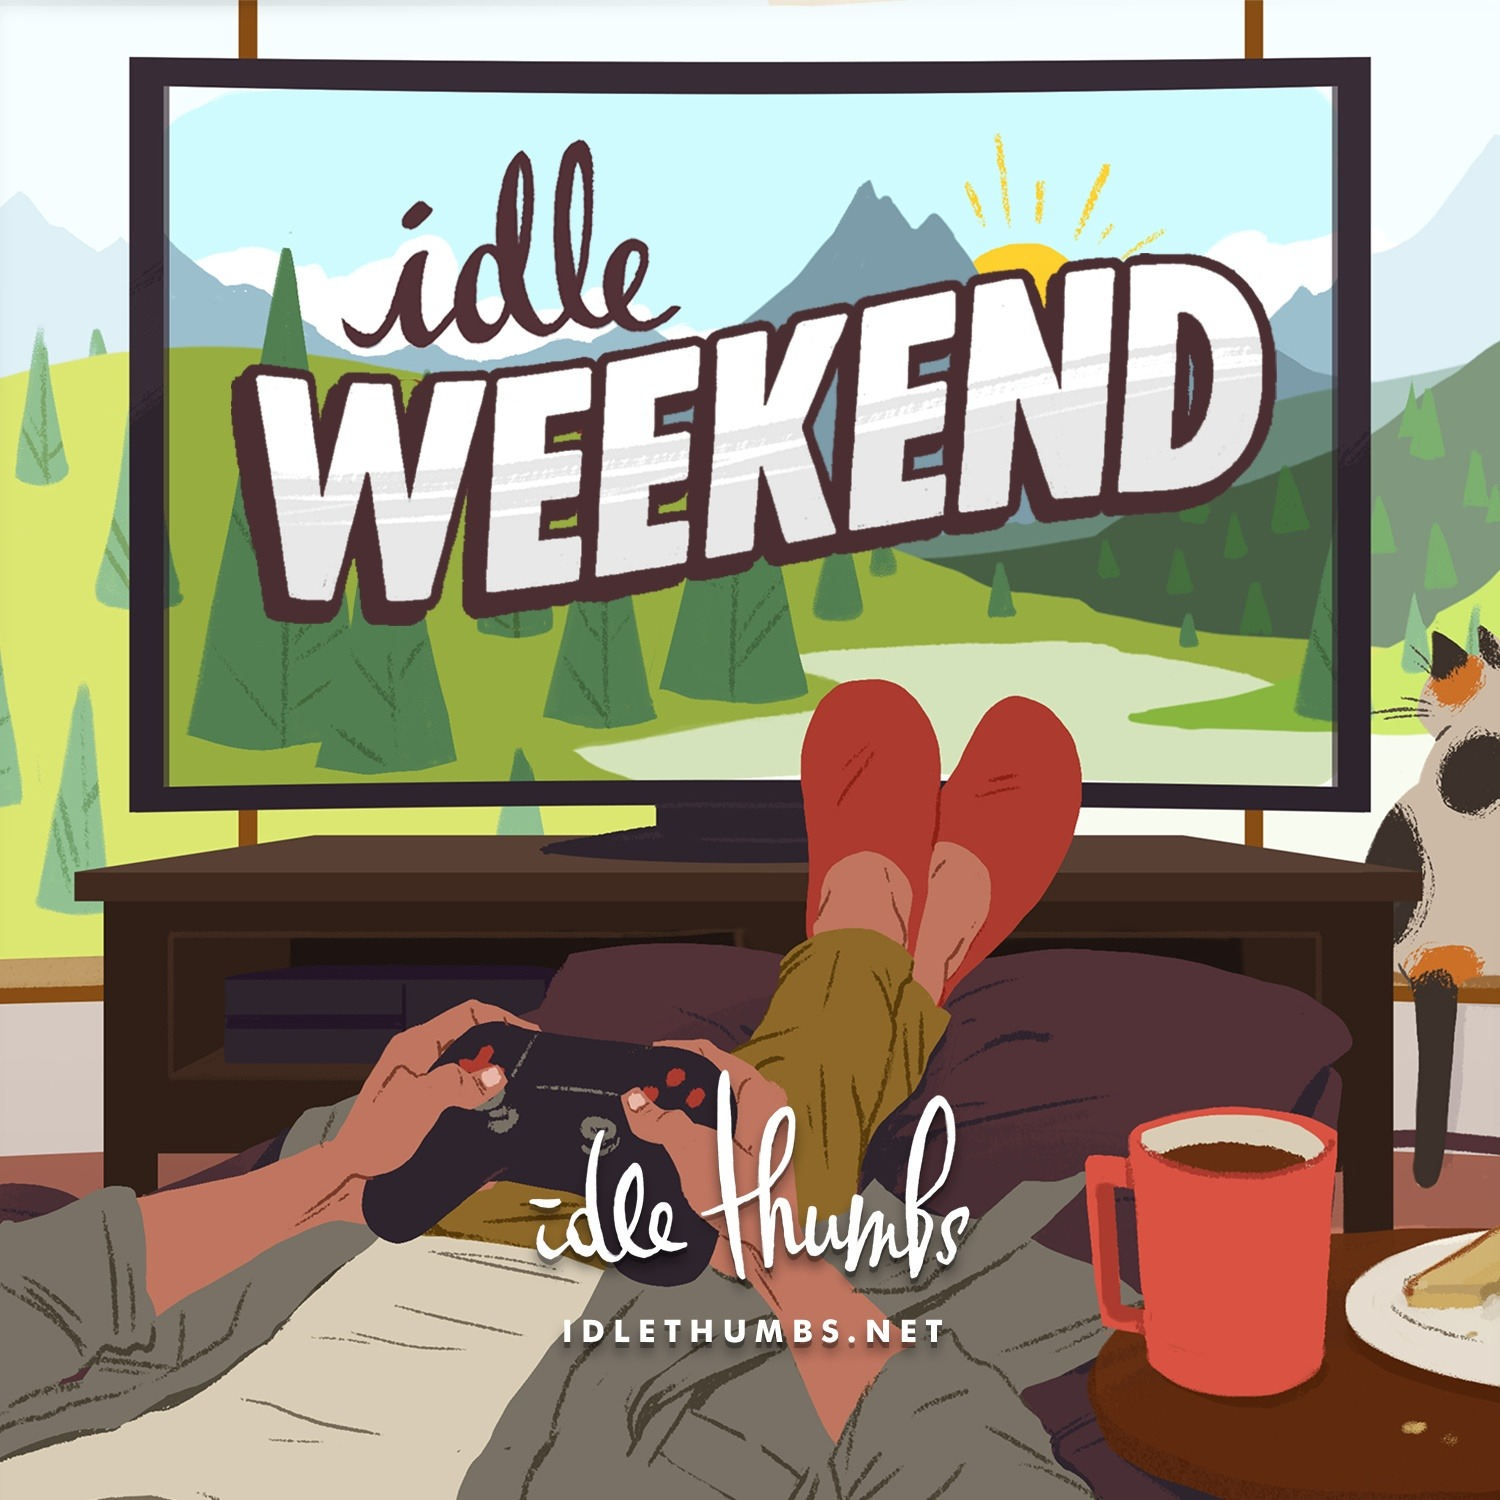 Idle Weekend